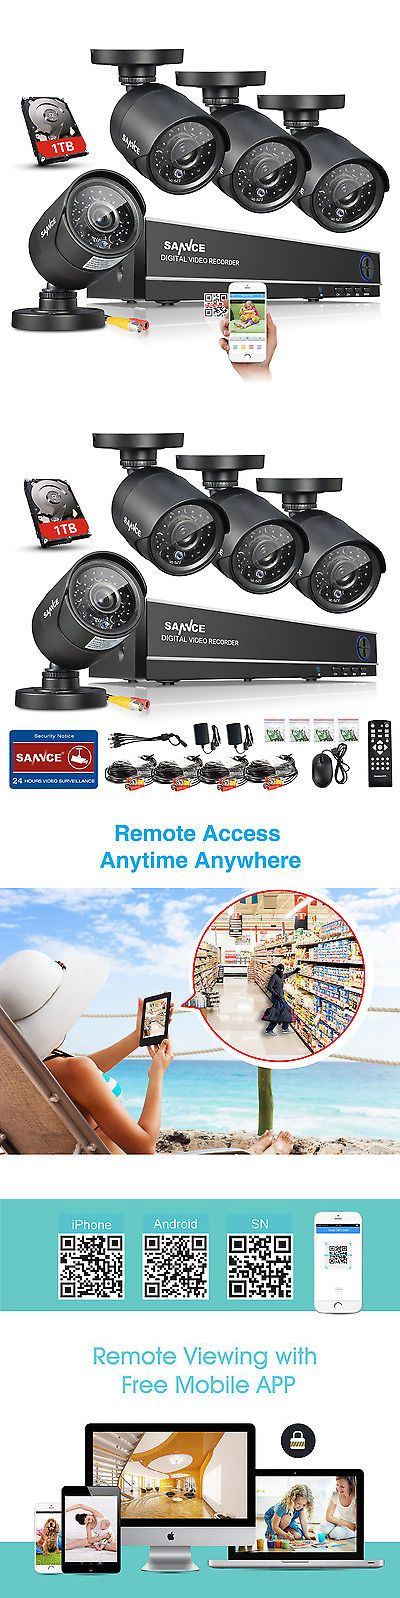 Security Cameras: Sannce 8Ch 1080P Dvr Outdoor Night Vision Home Security Ir Camera System 1Tb Hdd BUY IT NOW ONLY: $154.99